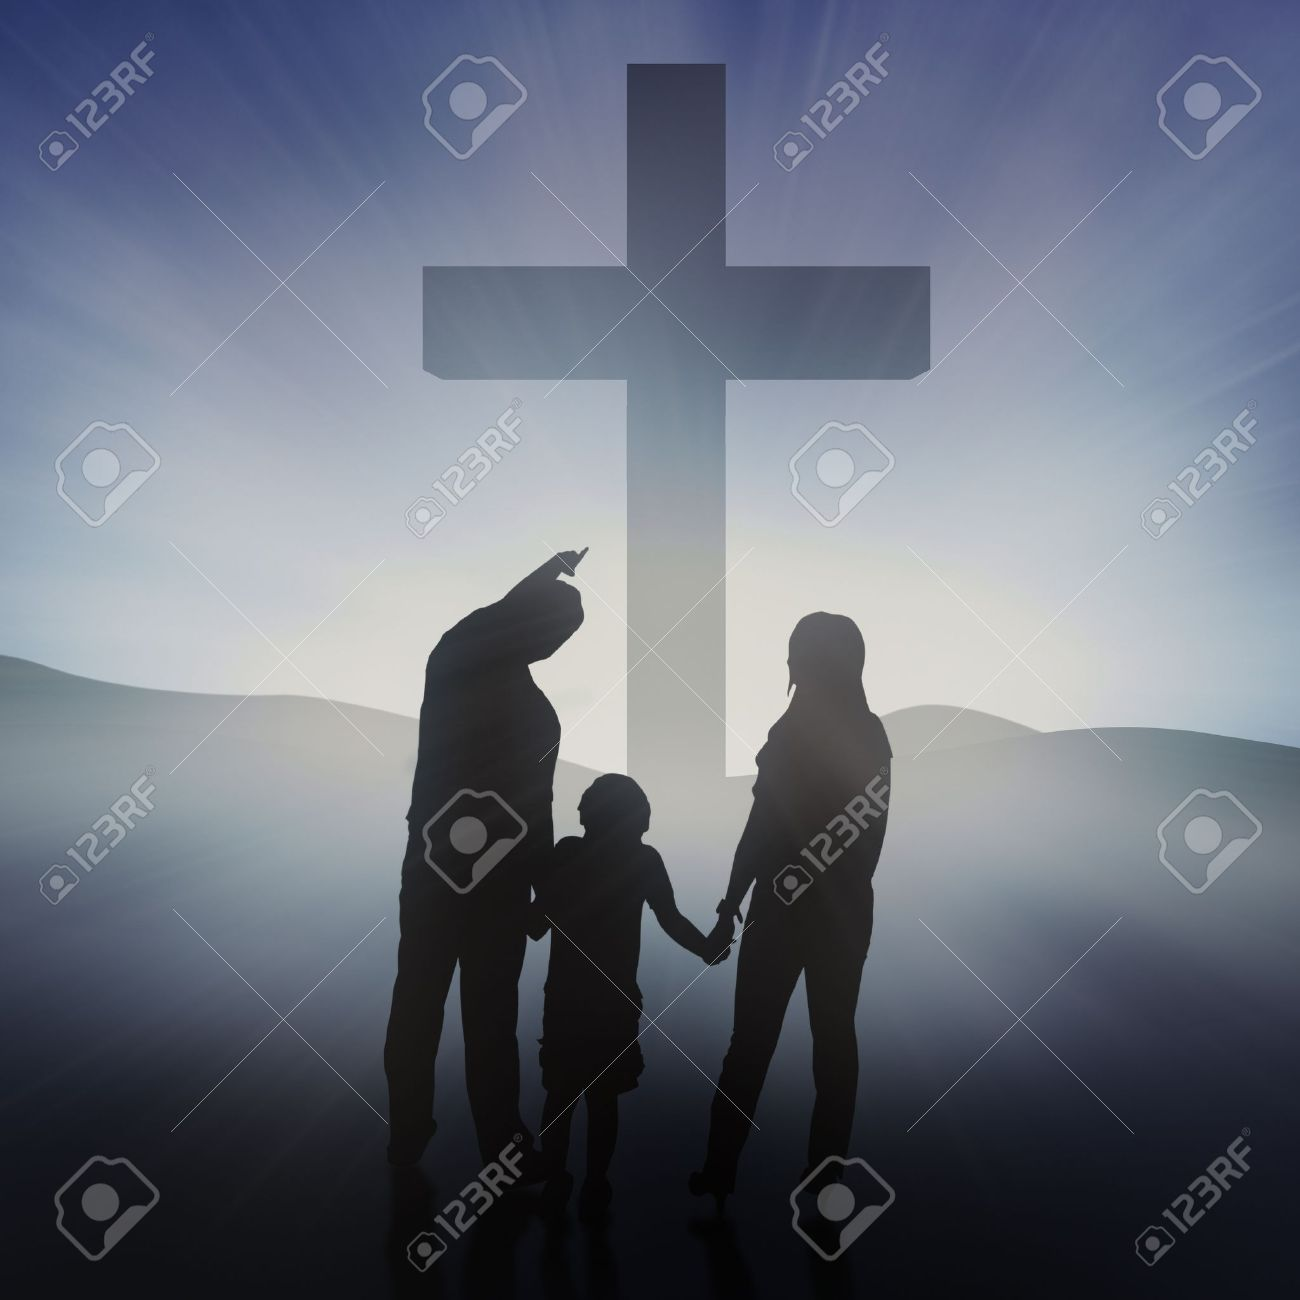 Silhouette of the holy cross on background of storm clouds stock - God Is Love Silhouette Of Christian Family At The Cross On Blue Background